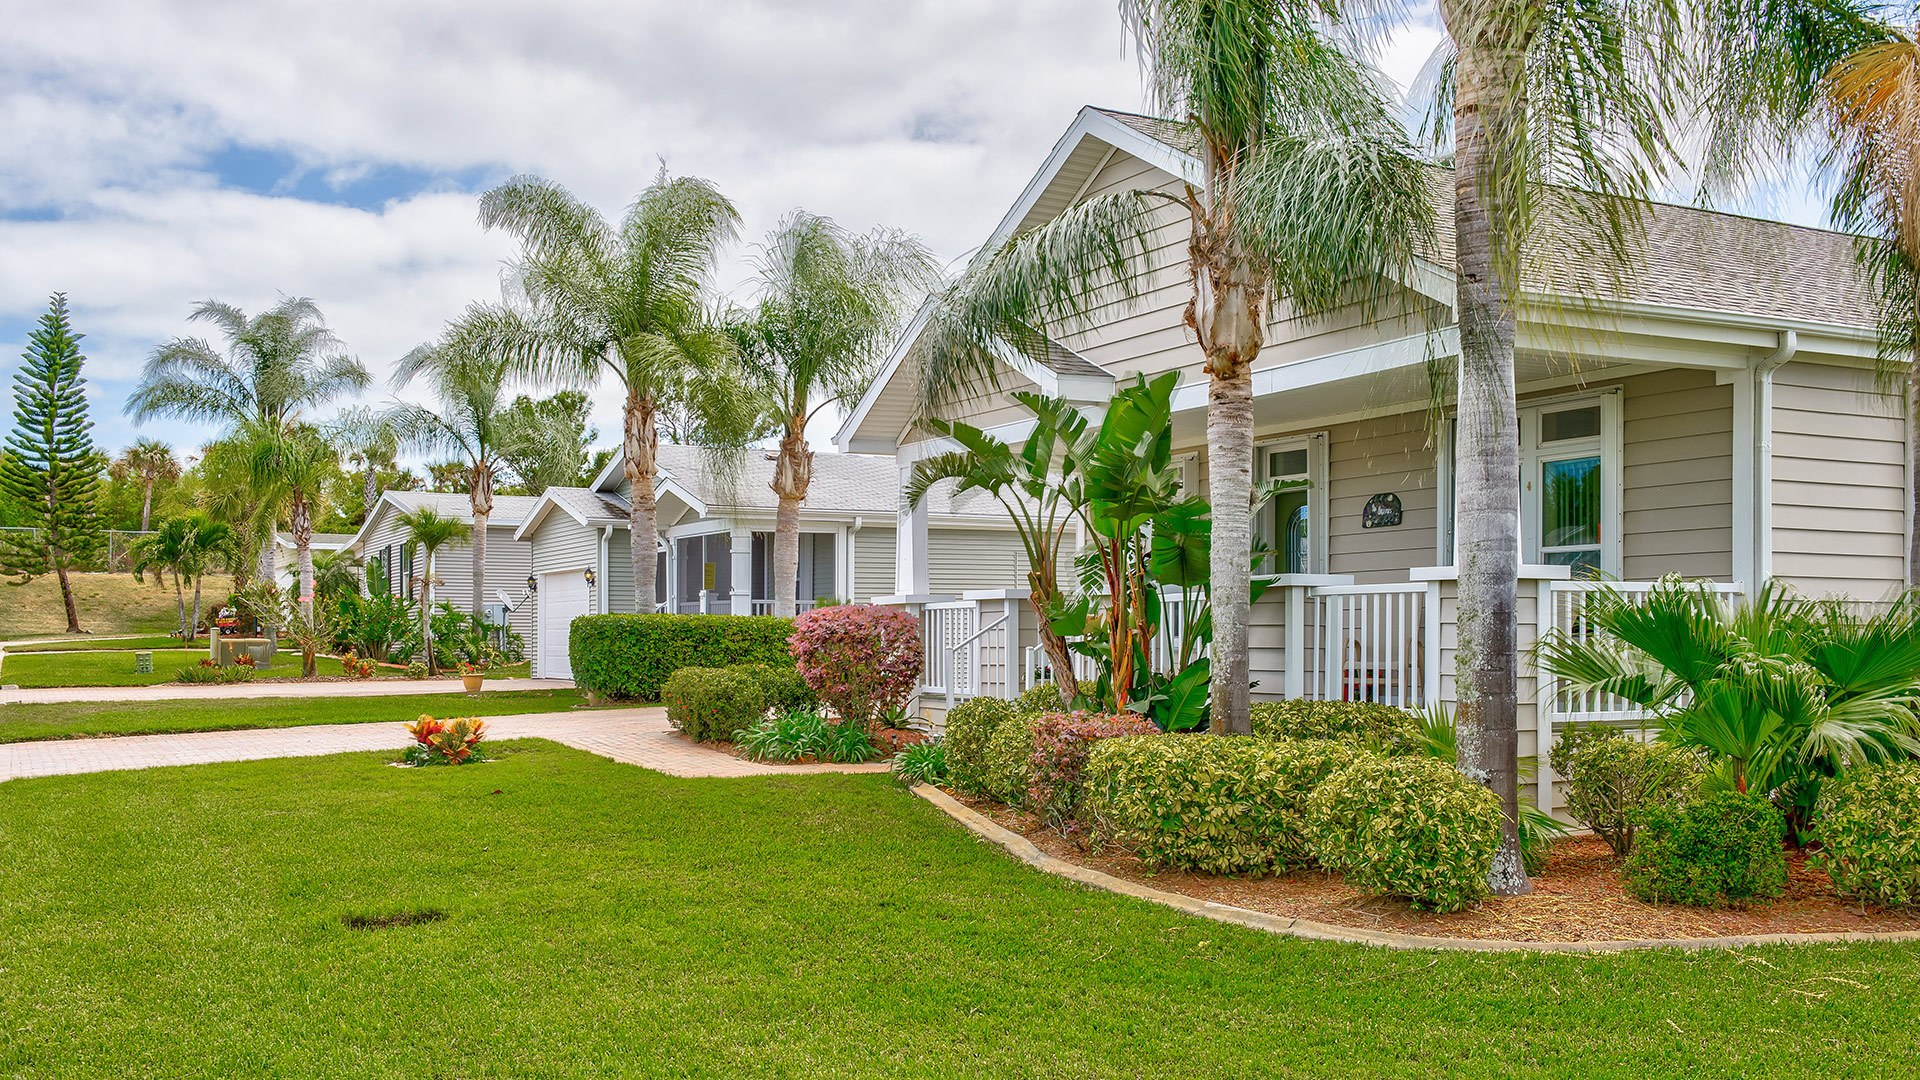 Park Place 55+ Manufactured Homes Community Street View in Sebastian, FL